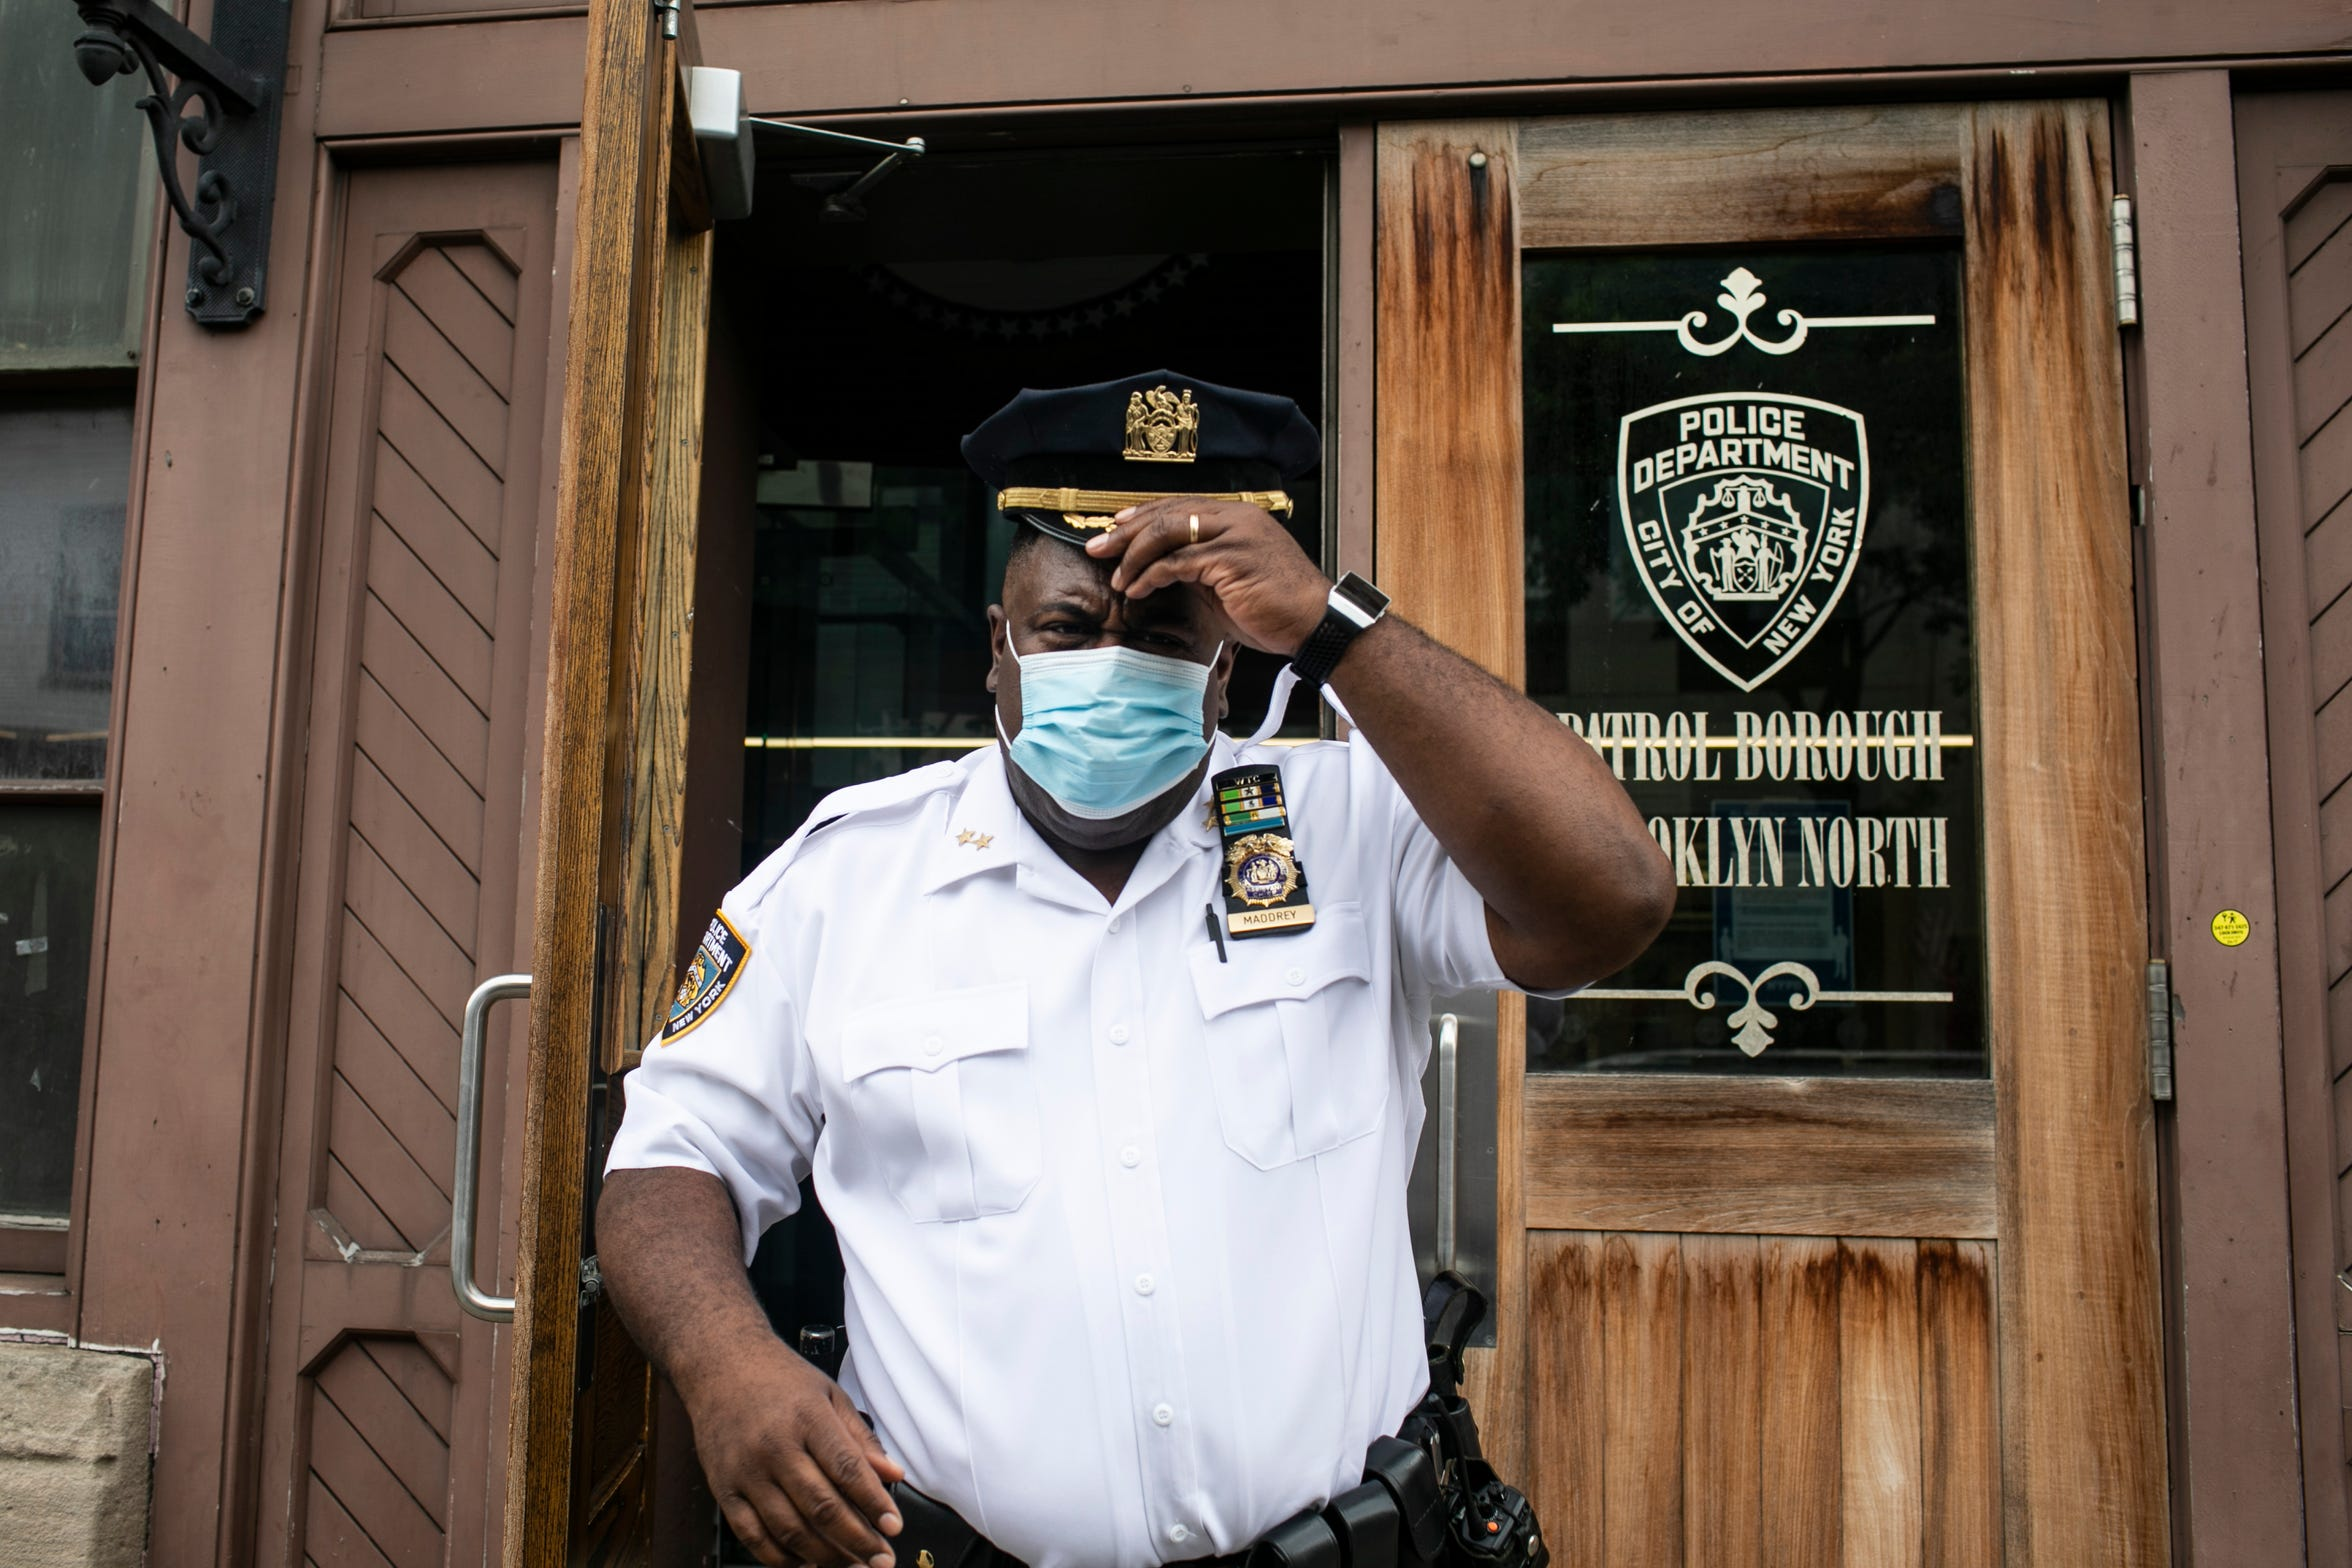 Assistant Chief Jeff Maddrey, leaves the Brooklyn North Patrol Borough, Thursday, June 11, 2020, in the Brooklyn borough of New York.